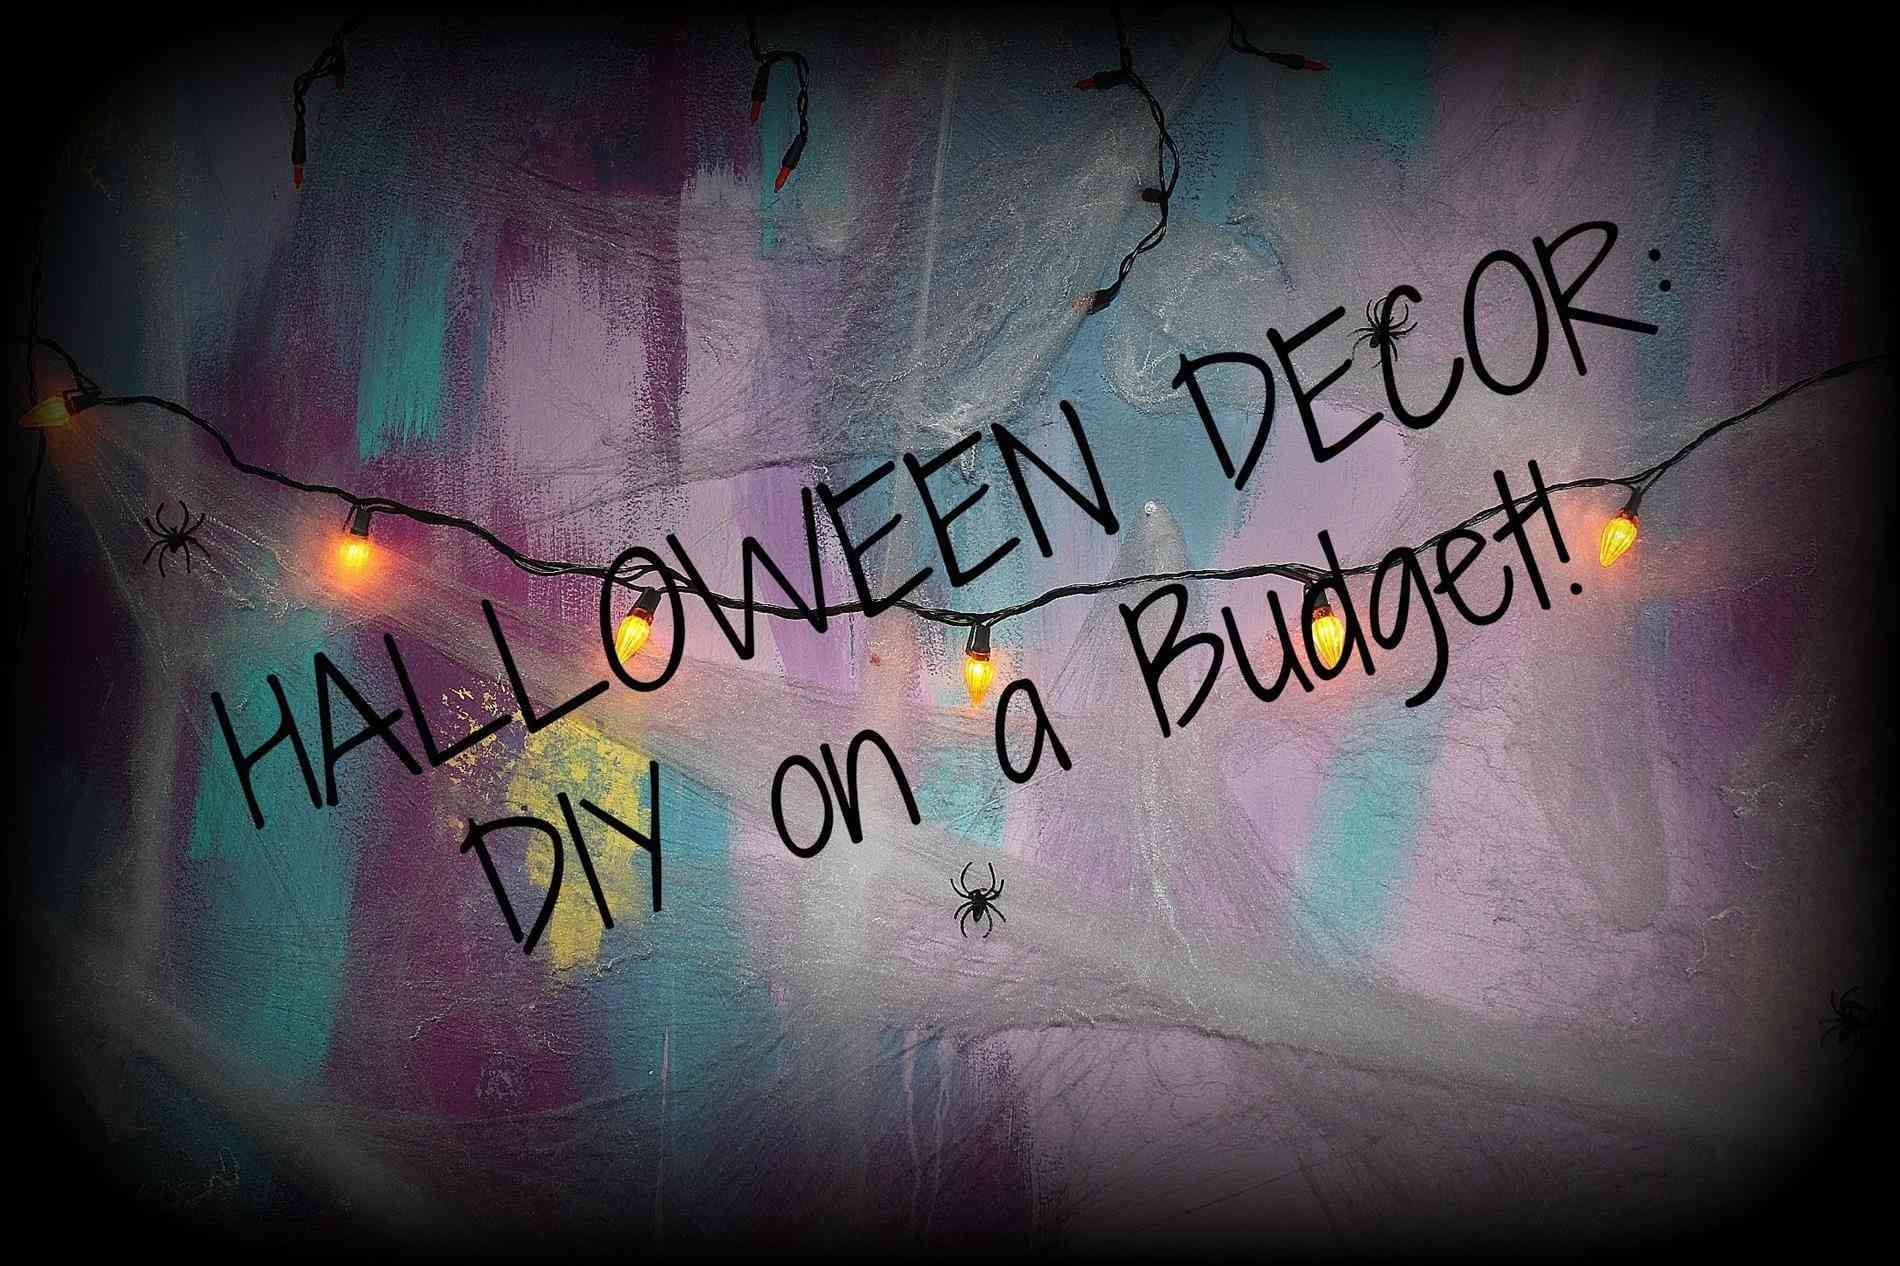 New Post halloween decorations diy visit Bobayule Trending Decors - halloween decorations diy